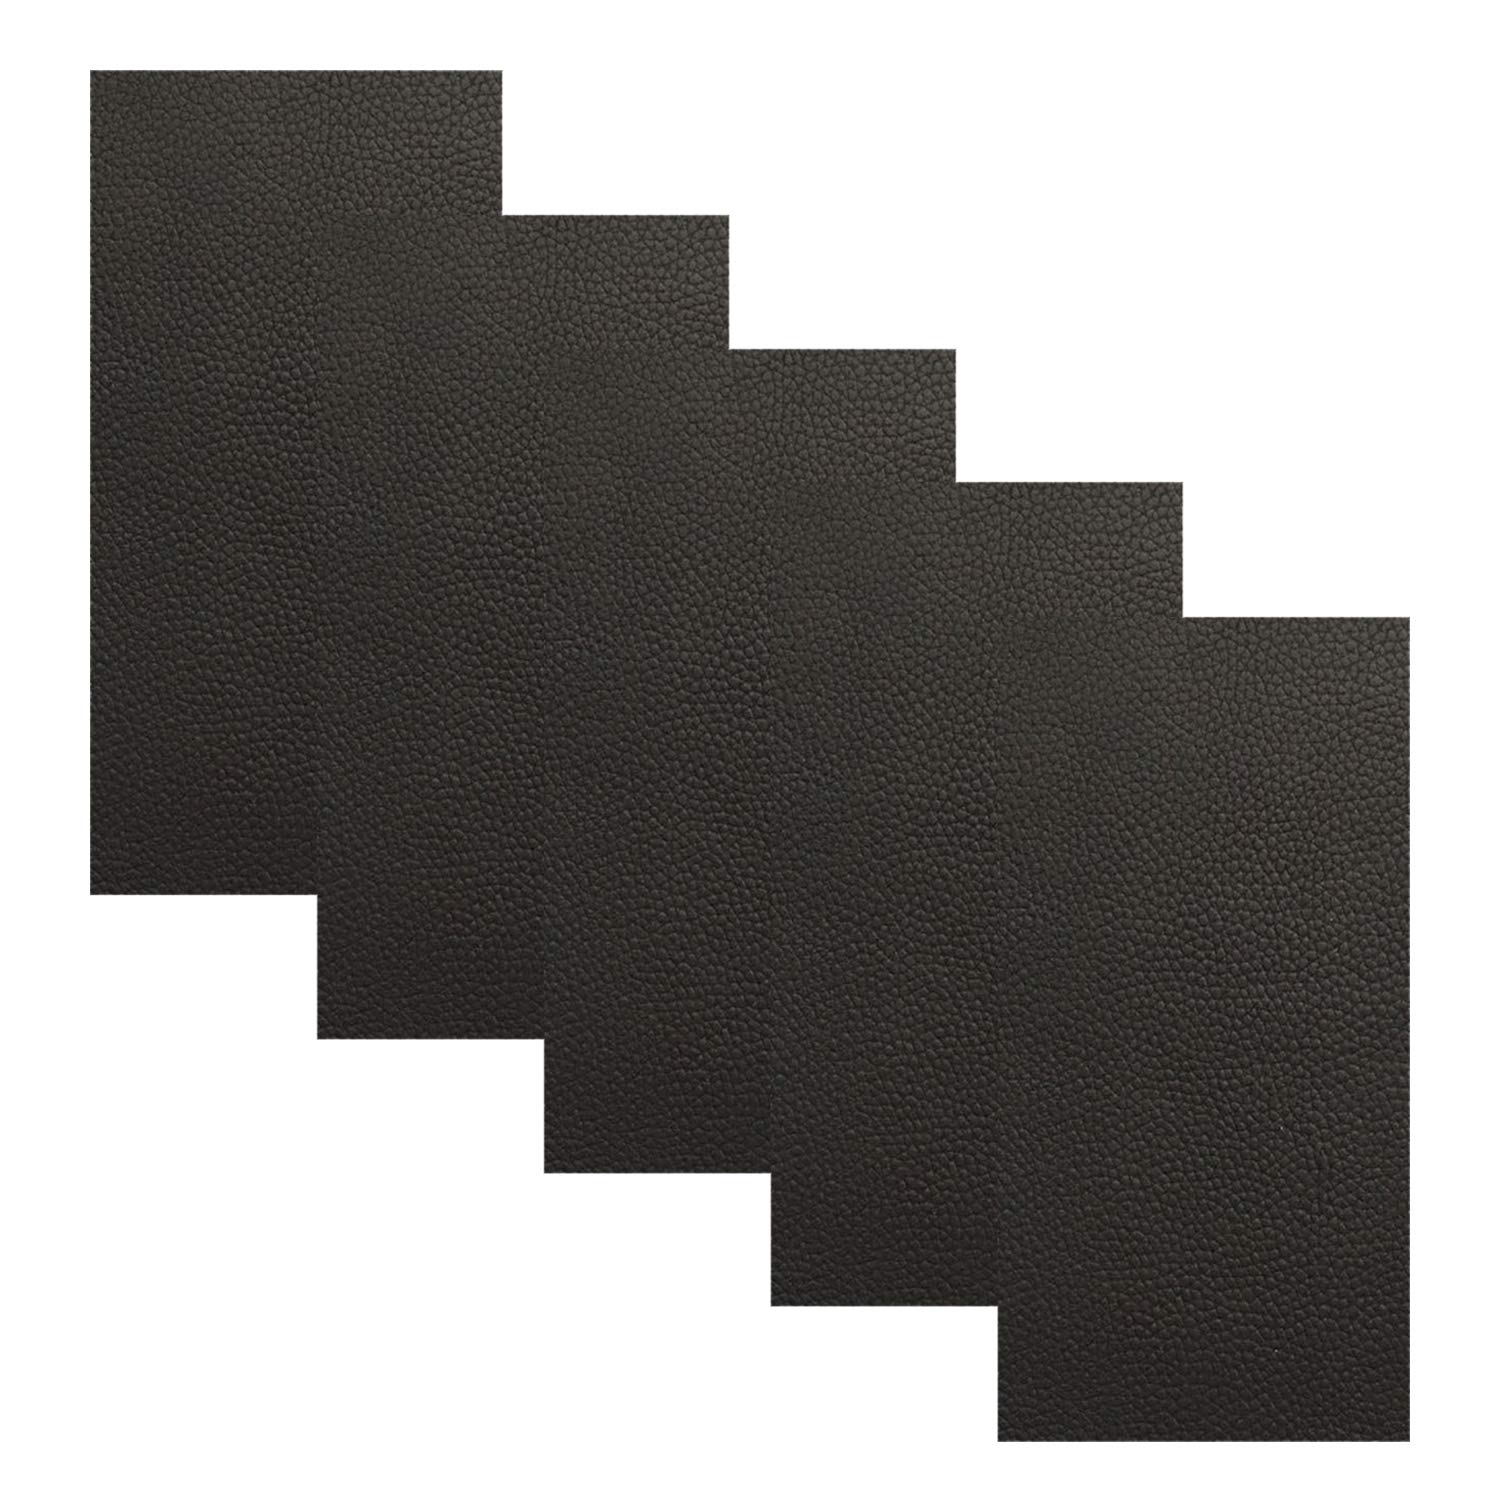 Leather Repair Patch - 5 Pieces Leather Adhesive Patches for Couch Furniture Sofas Car Seats Handbags Jackets (Dark Brown) DOCHY 4336847732